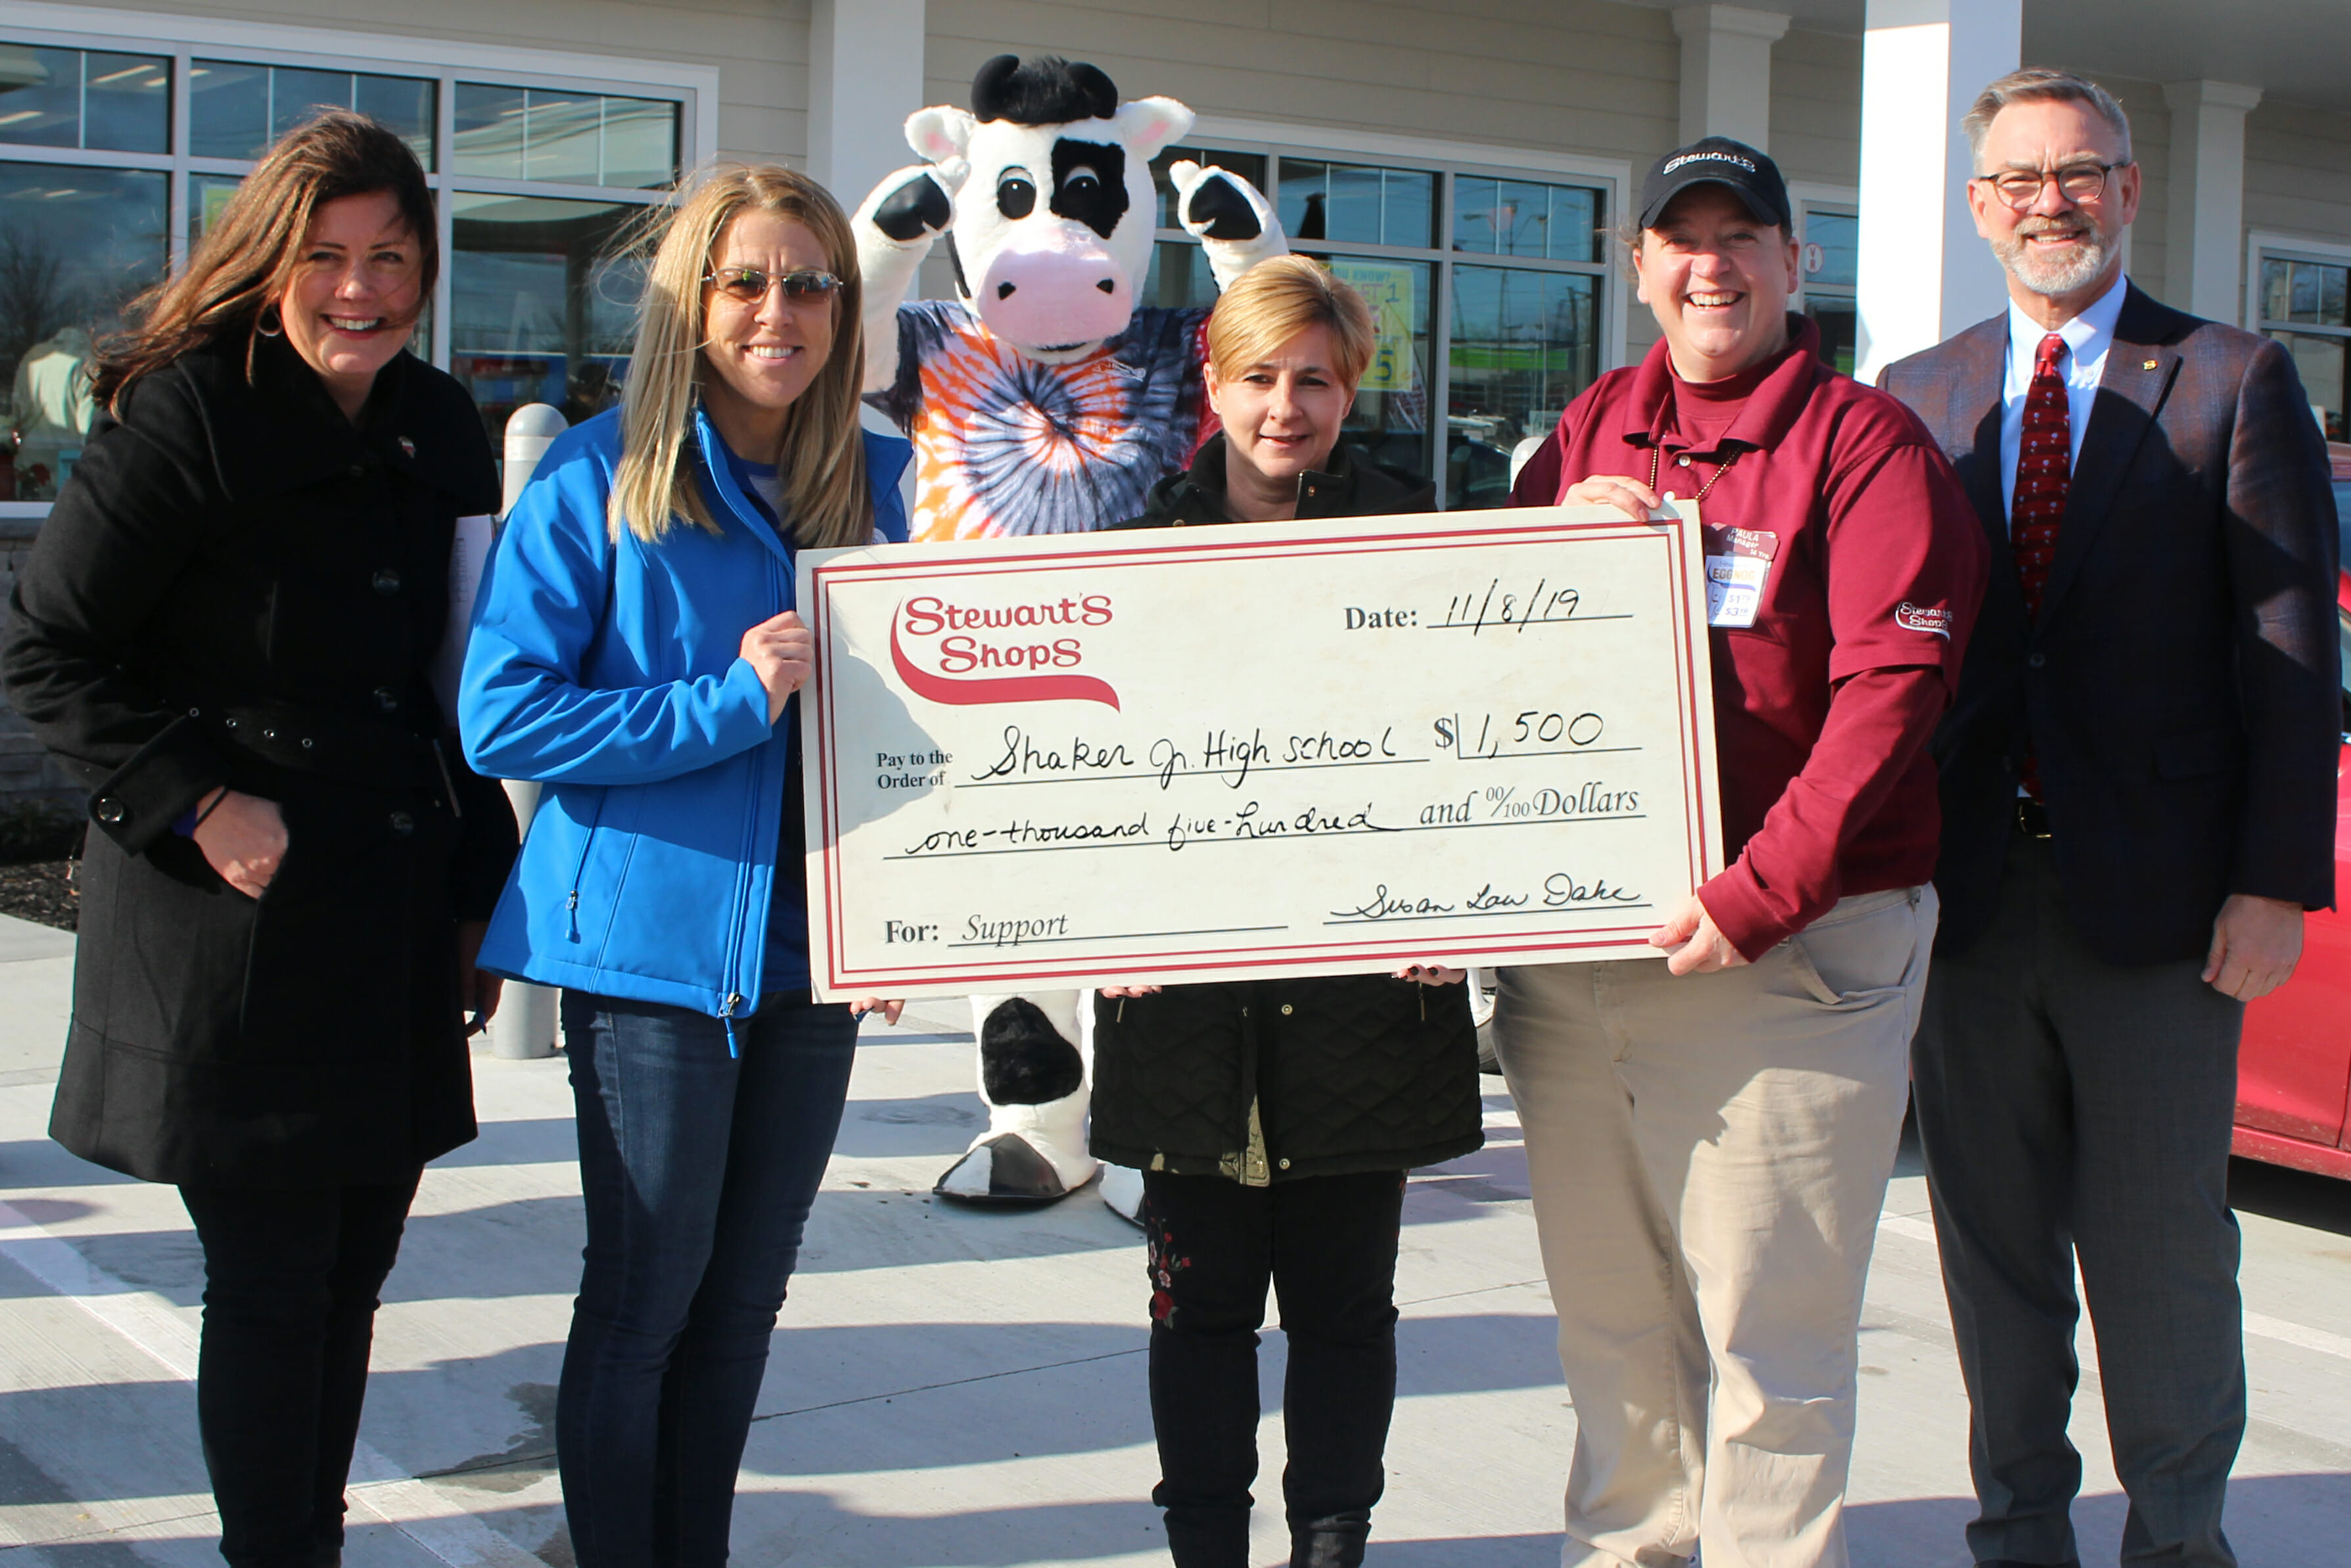 1,500 dollar donation check presentation to the Shaker Jr high school food pantry. 5 people featured in the image